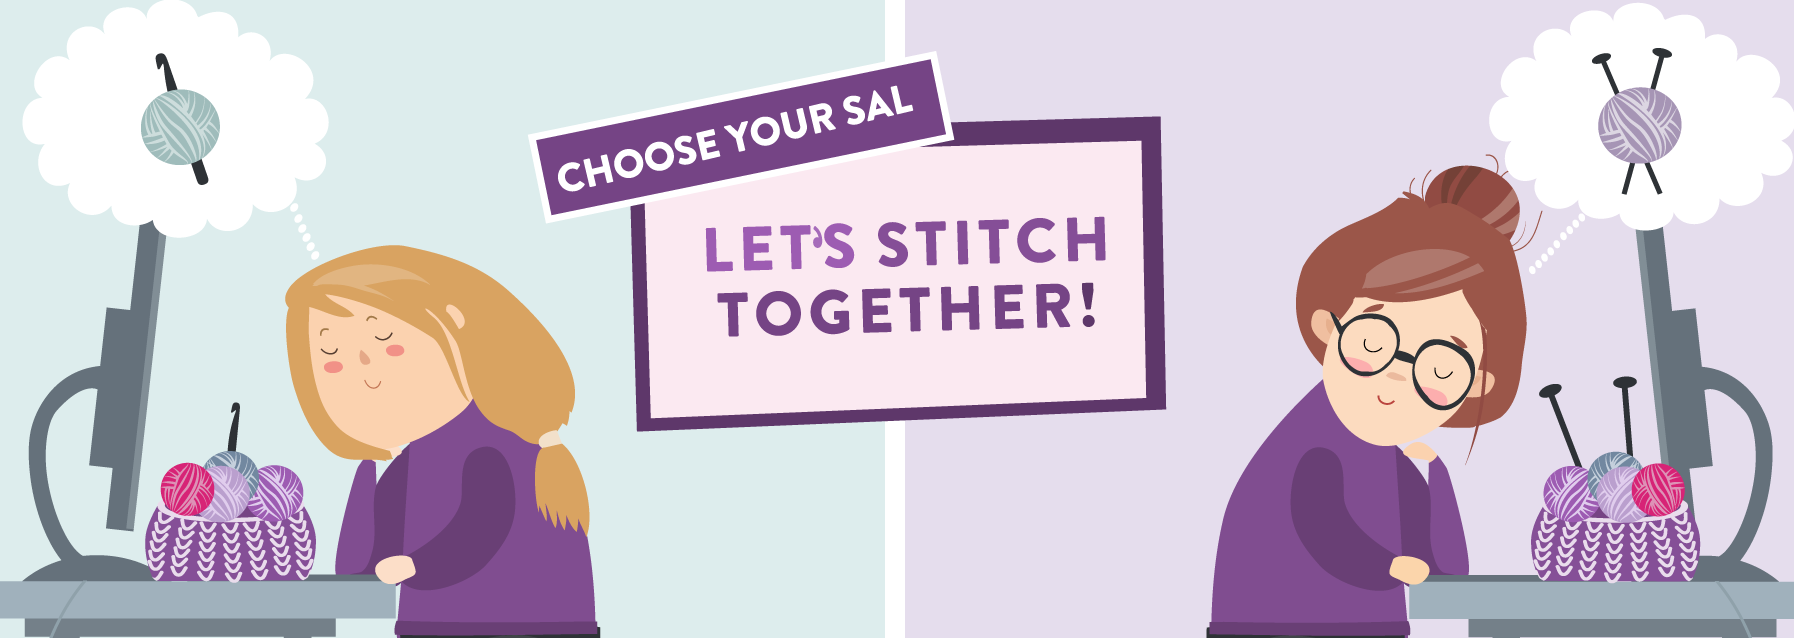 Let's Stitch Together Choose Your SAL